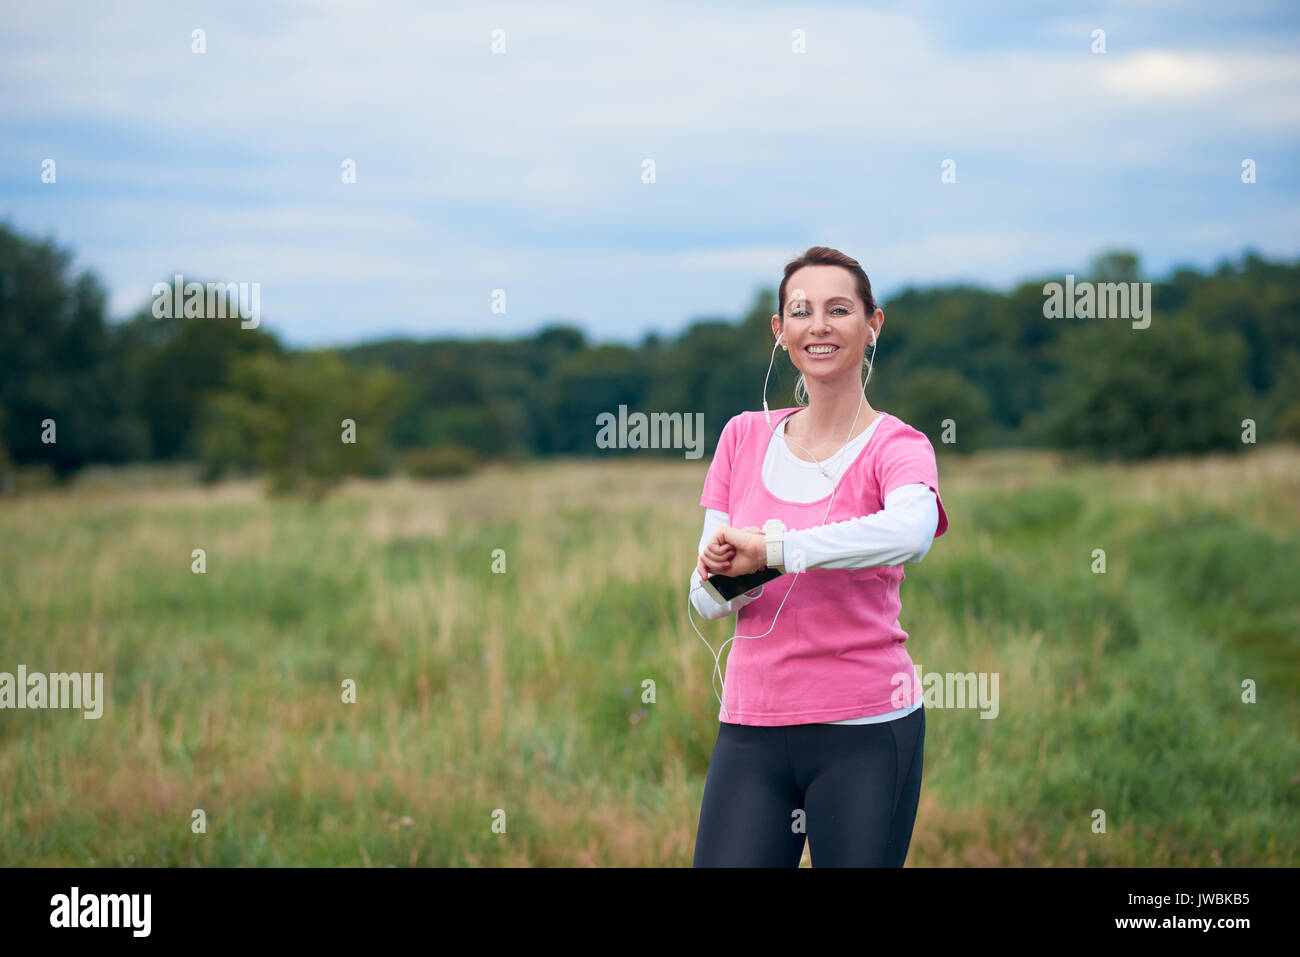 A healthy, smiling woman in fit wear with smart phone, watch and earphones, exercising outdoors in nature. Stock Photo